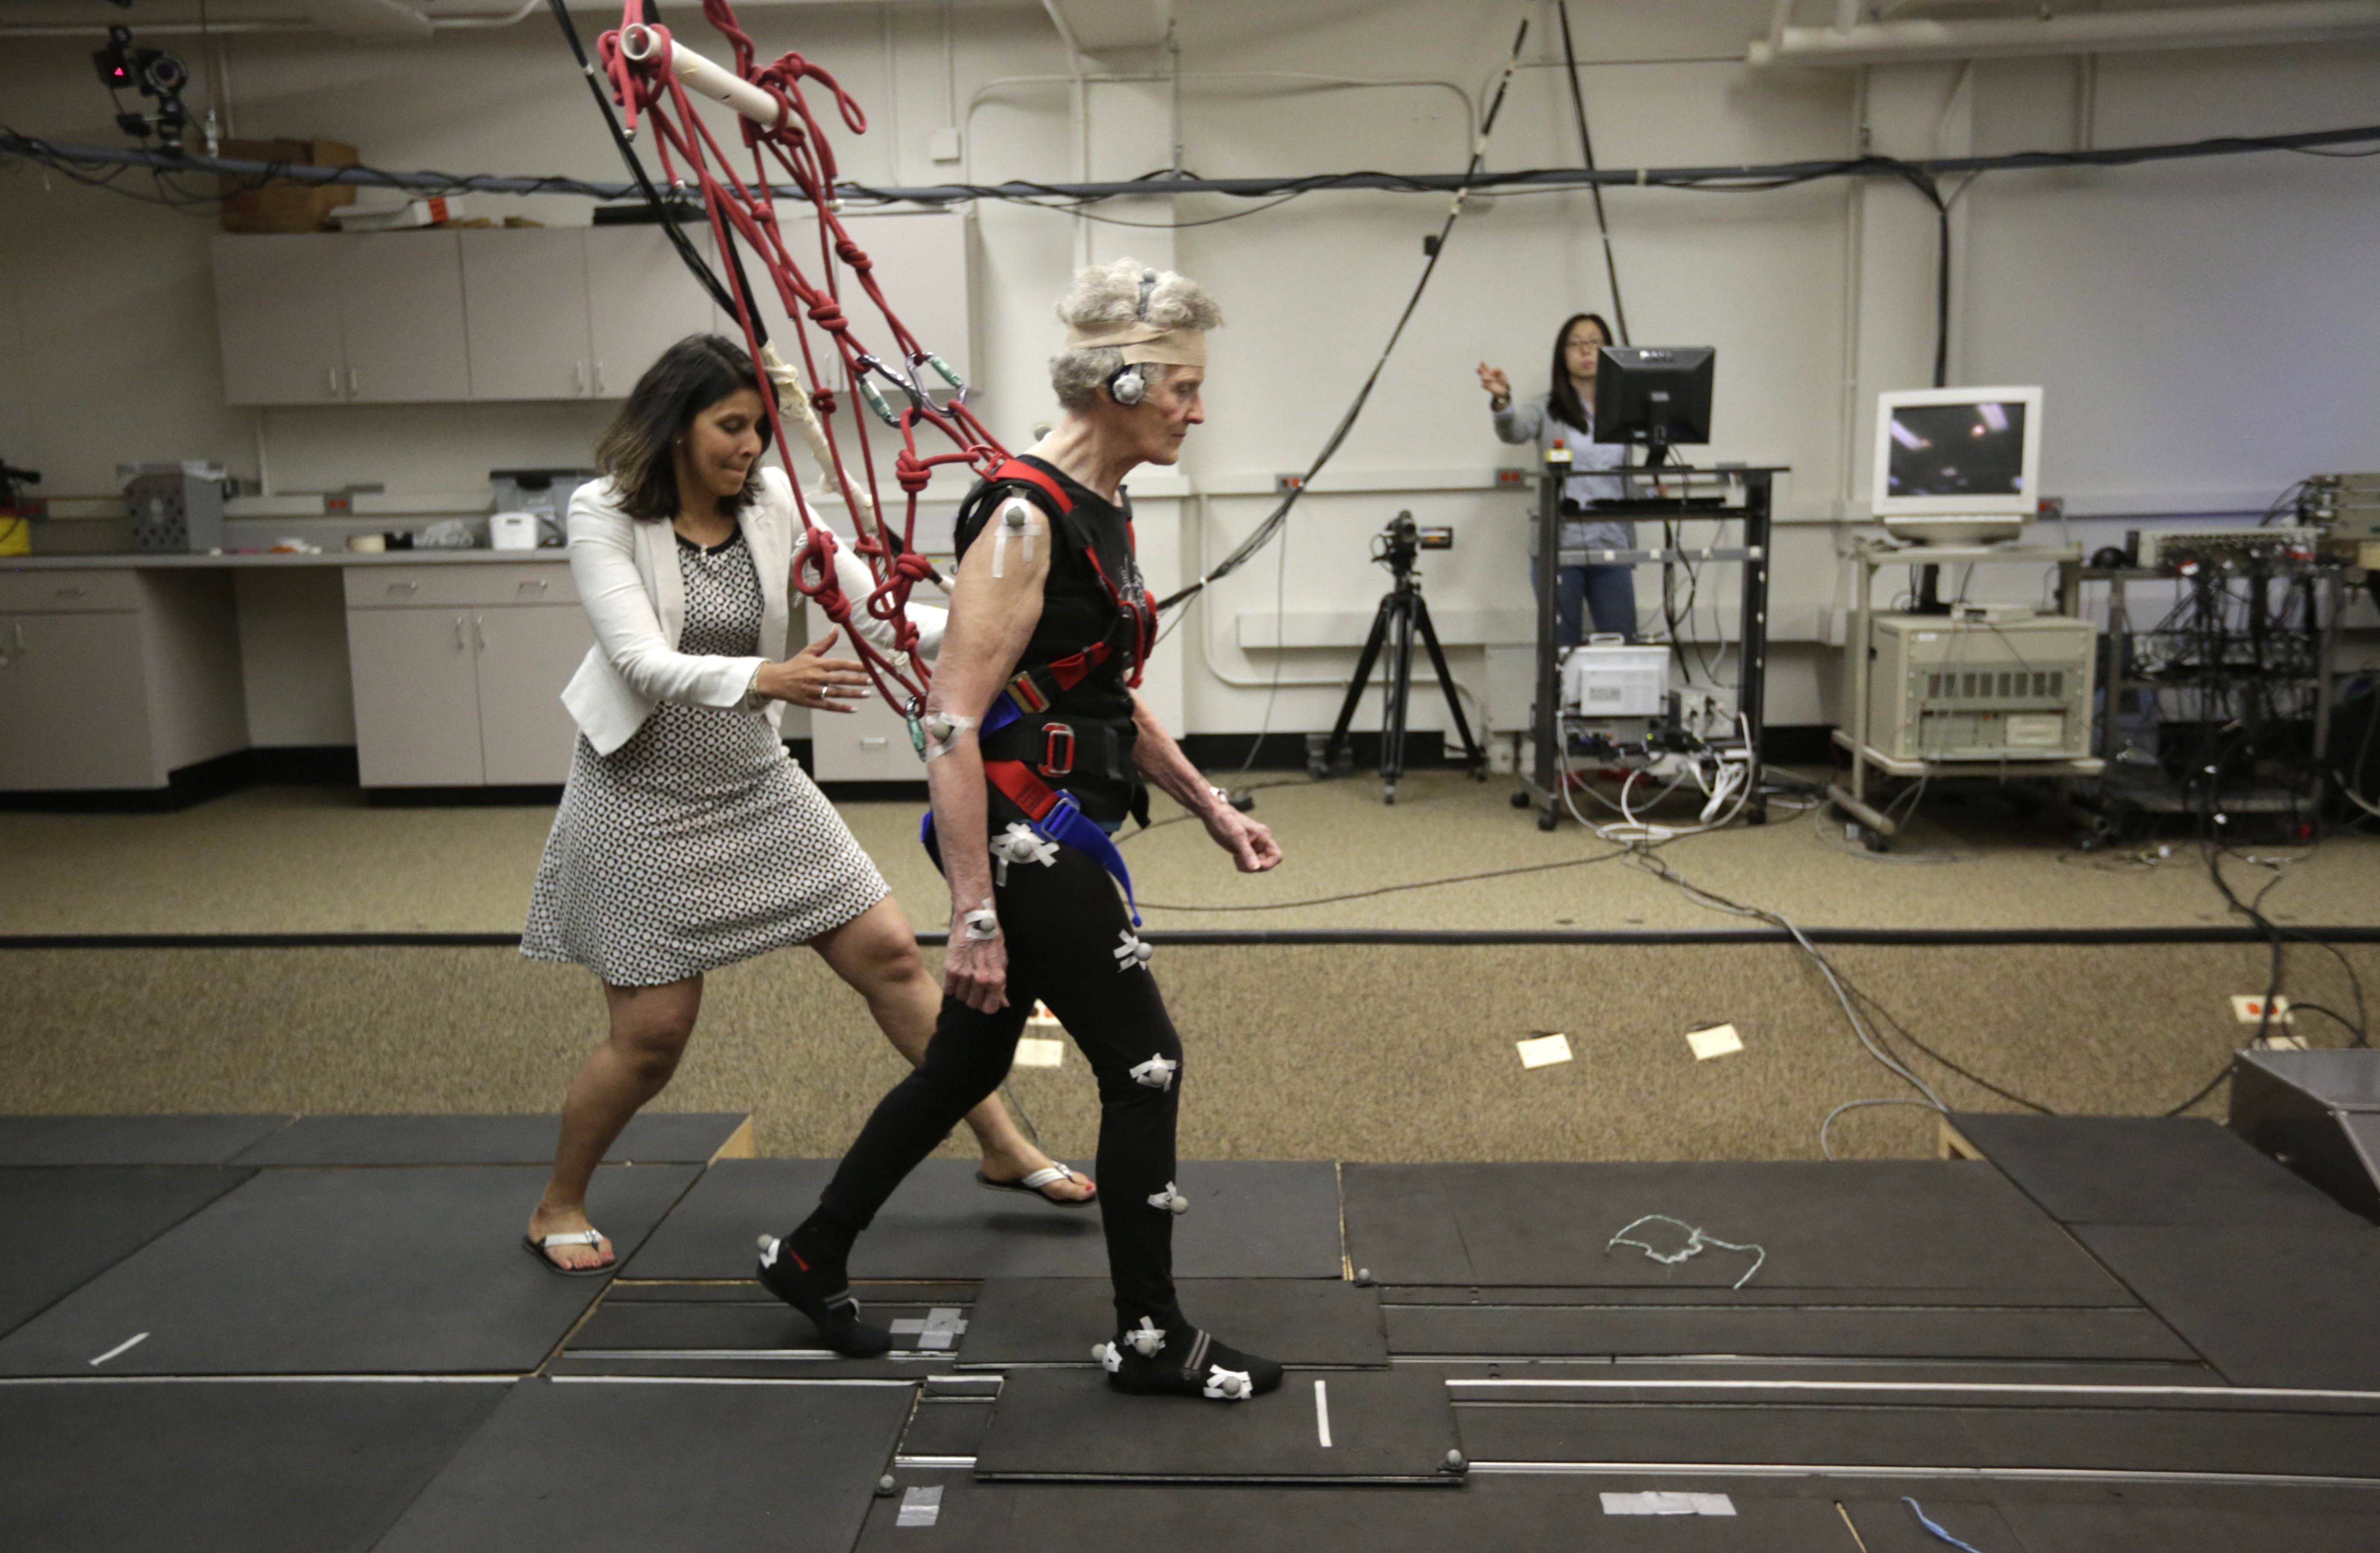 University of Illinois-Chicago physical therapy assistant professor Tanvi Bhatt, left, walks alongside Mary Kaye, 81, as she demonstrates a treadmill balance session. Kaye, supported by a safety harness, walks on a lab-built walkway that causes people to unexpectedly trip and can teach them quickly how to catch themselves and avoid falling.